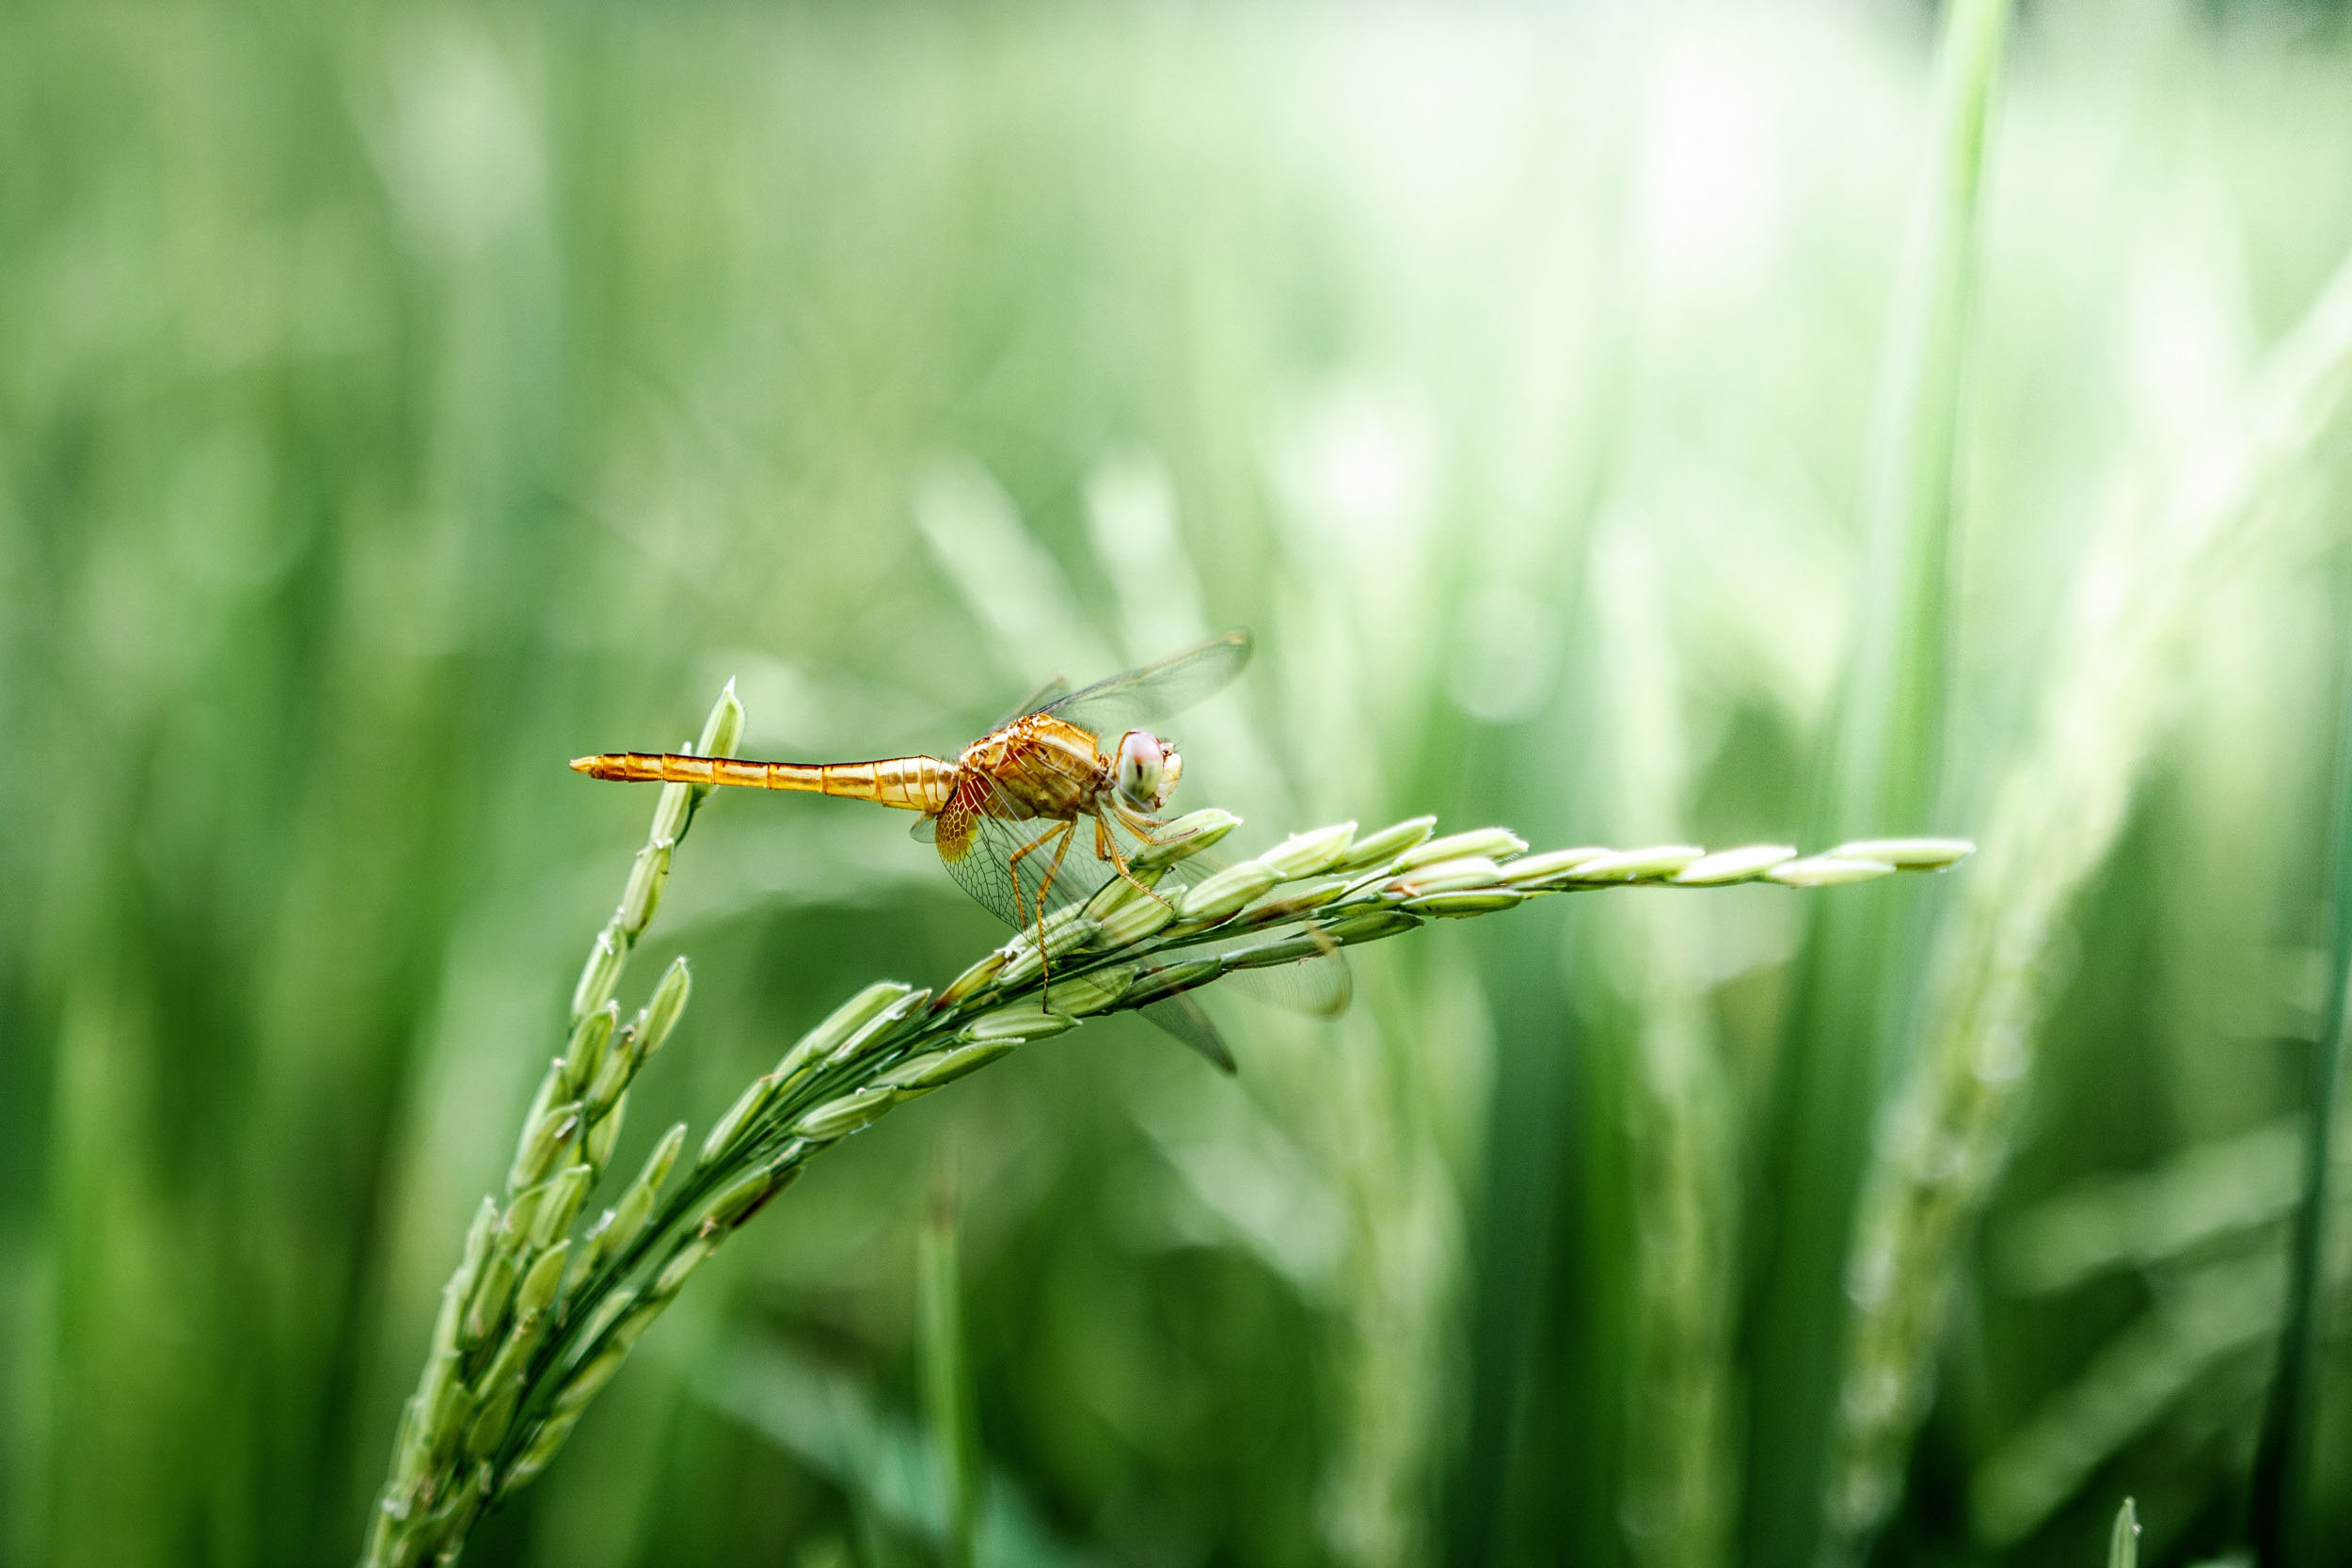 dragonfly,grain,green, peaceful,